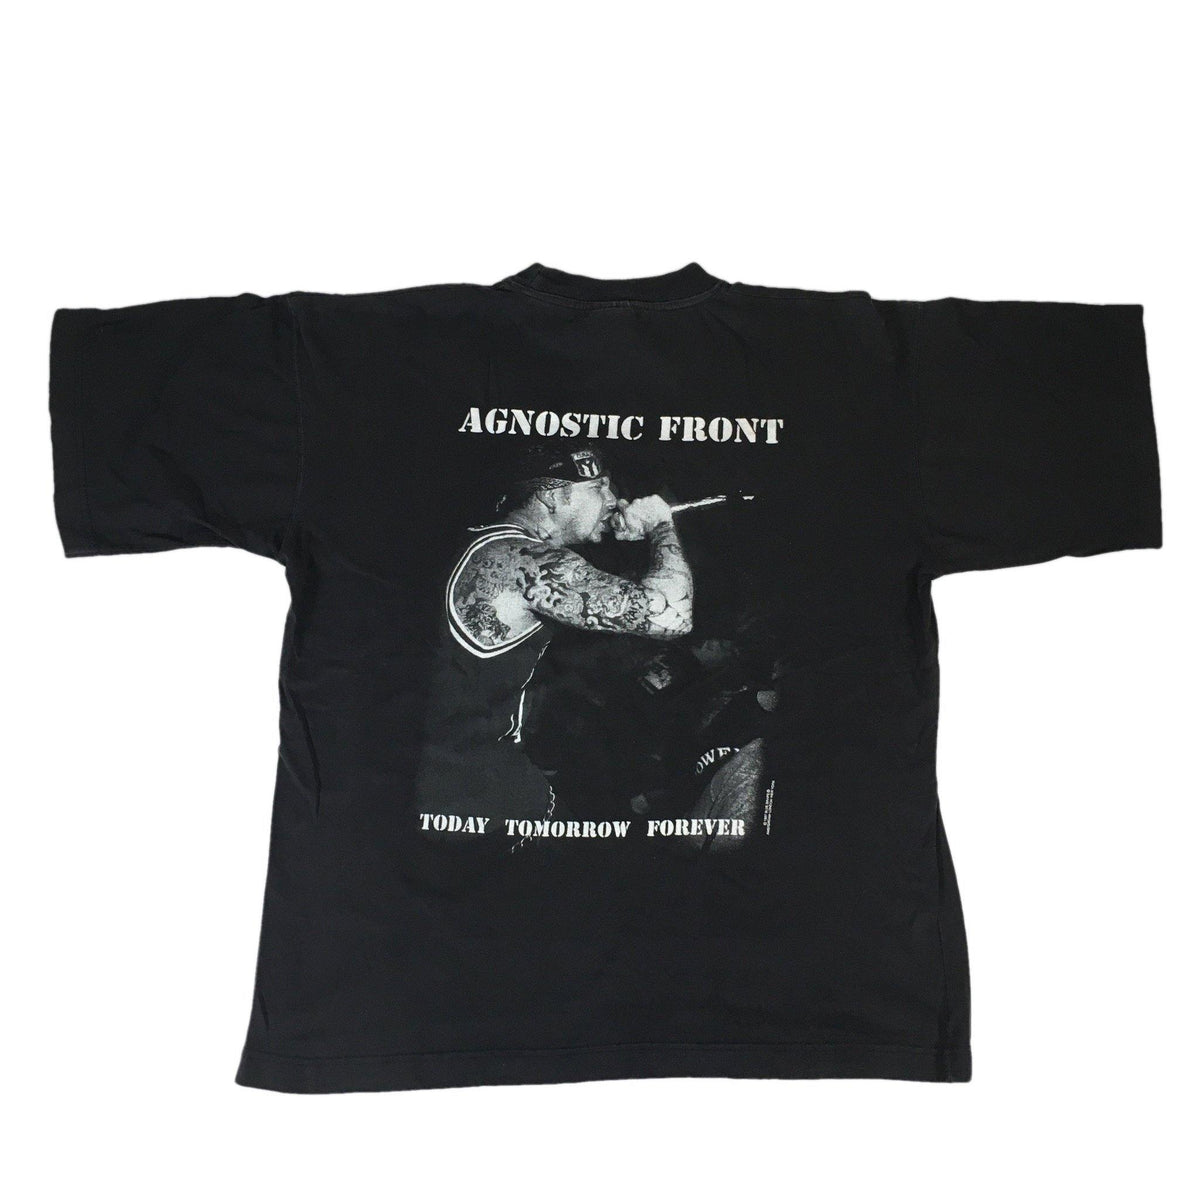 "Vintage Agnostic Front ""Today Tomorrow Forever"" T-Shirt - jointcustodydc"